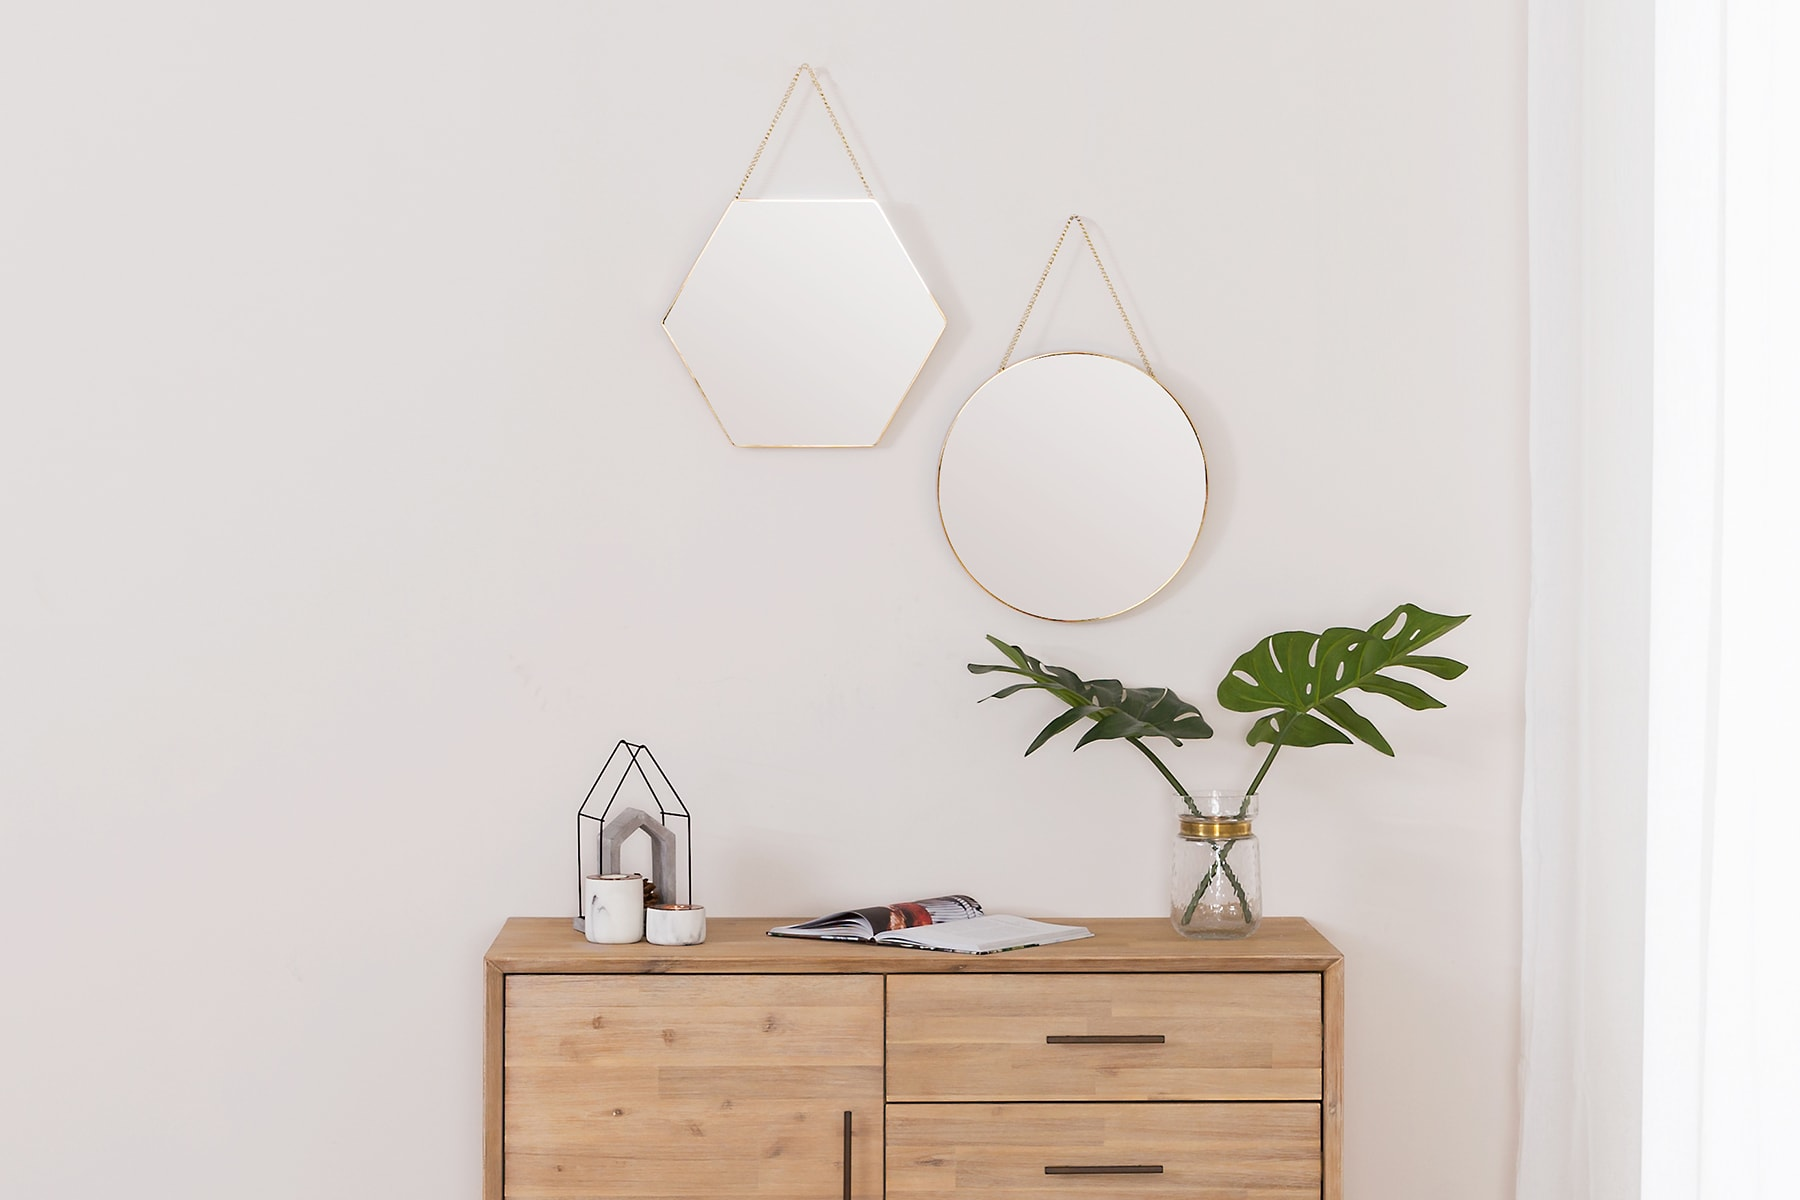 sideboard in walkway with hanging mirrors and plant